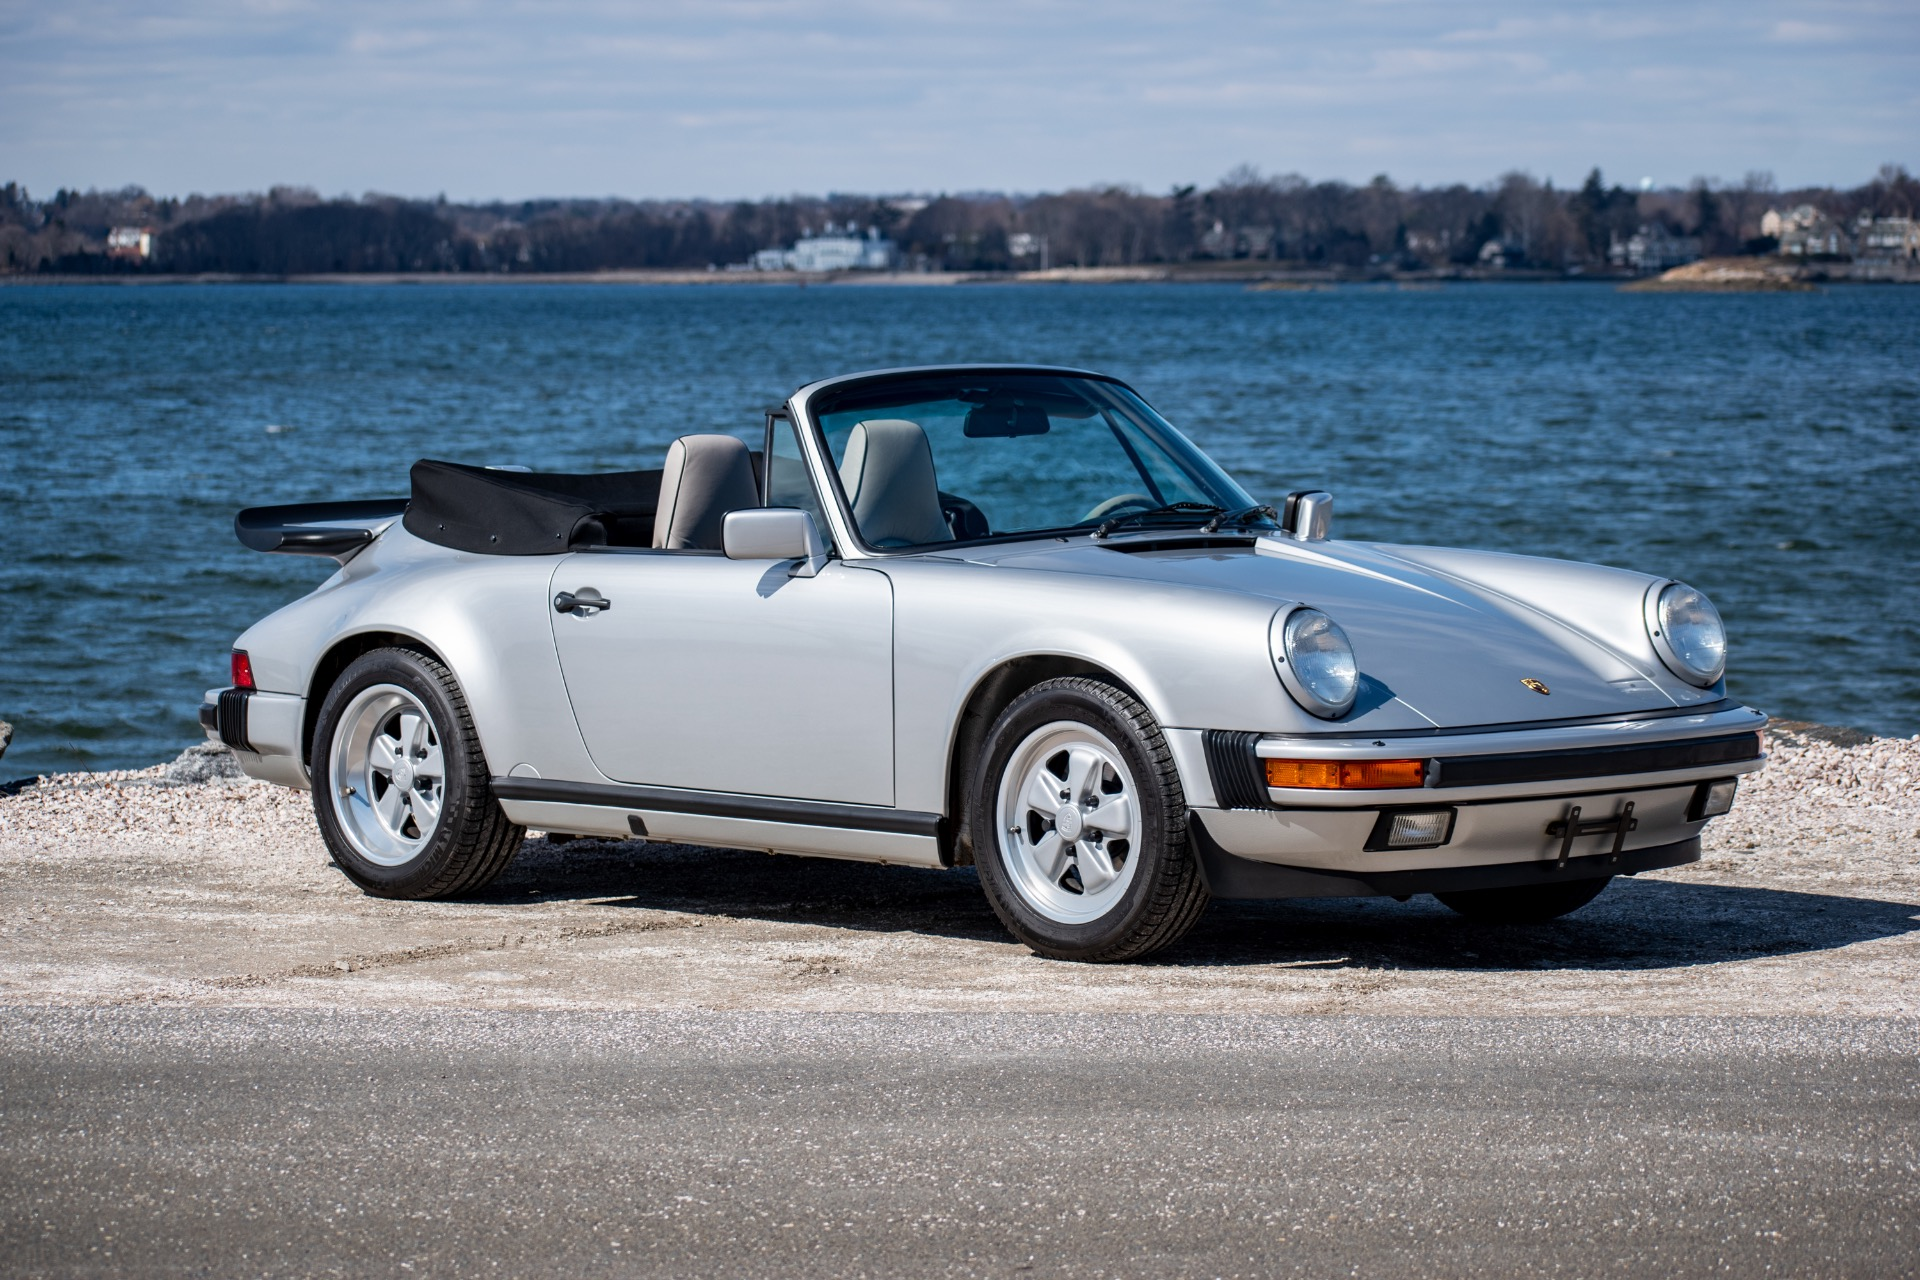 1989 Porsche 911 25th Anniversary Edition